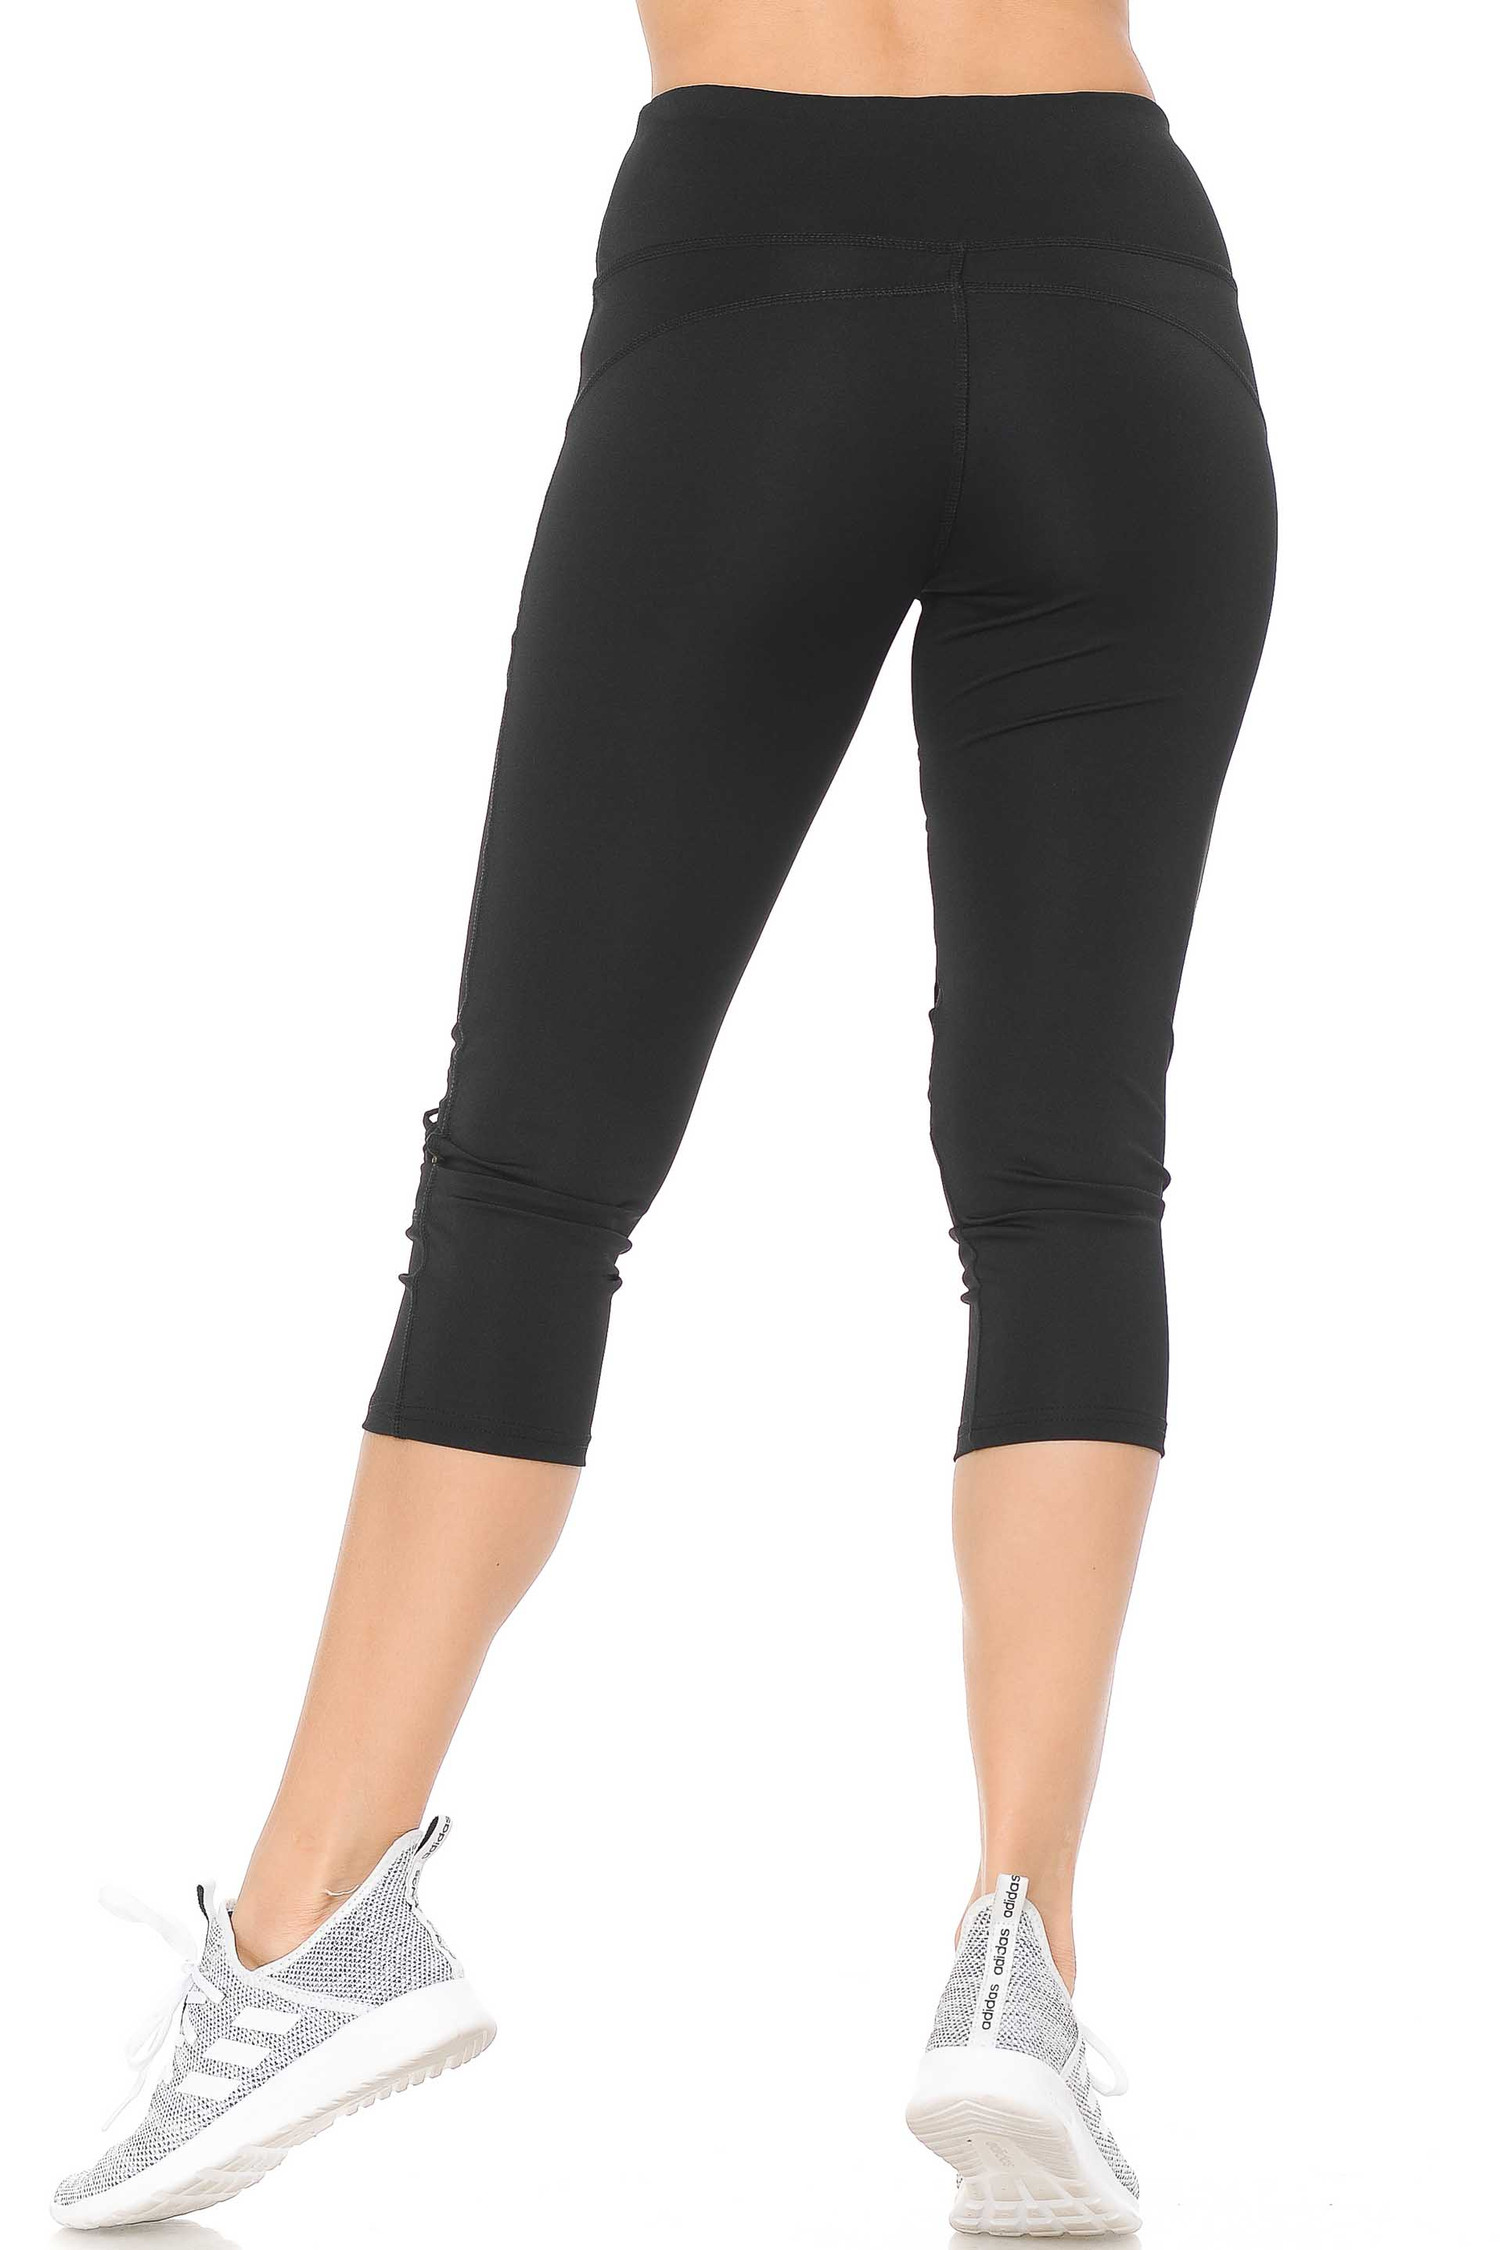 Dual Mesh Patch Women's Workout Capris